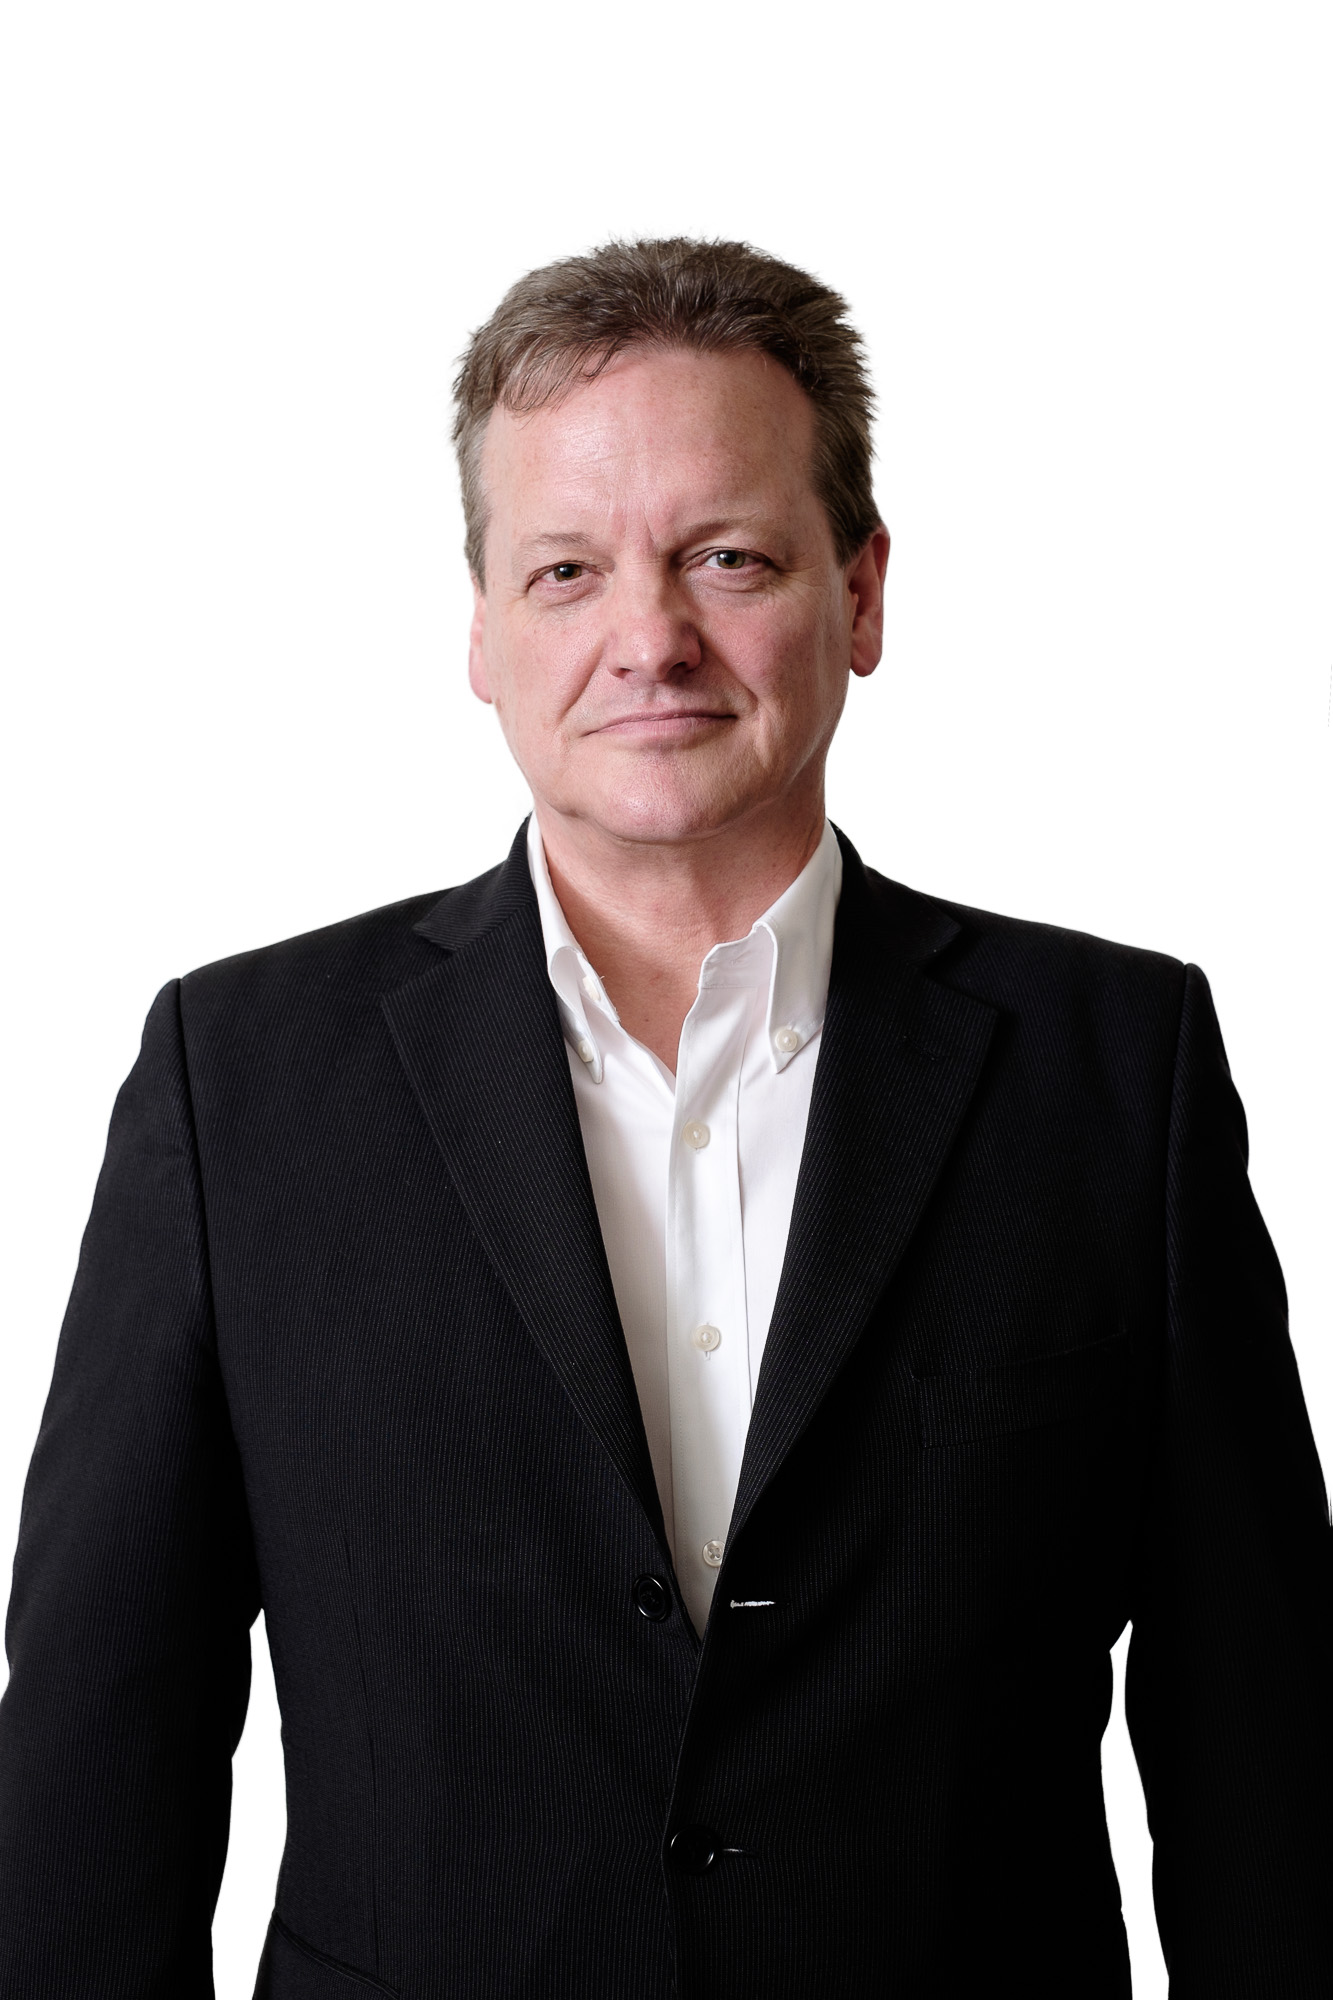 Graeme Coomber, global CEO of EDTRIN.